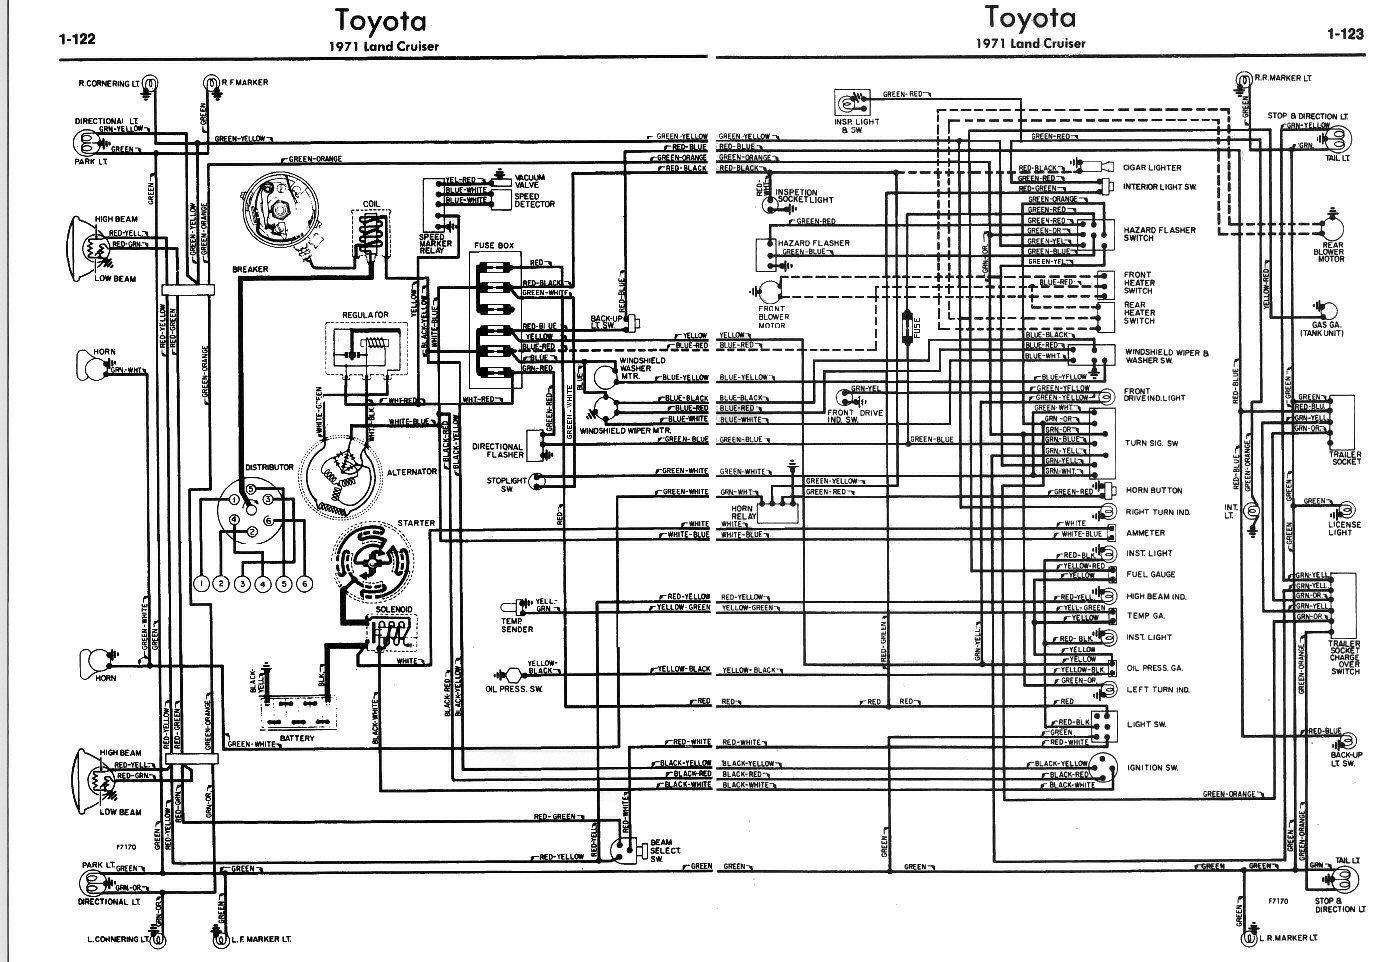 1984 fj60 wiring diagram wiring diagram perfomance  wiring diagram 85 fj60 wiring diagram table 1984 fj60 wiring diagram